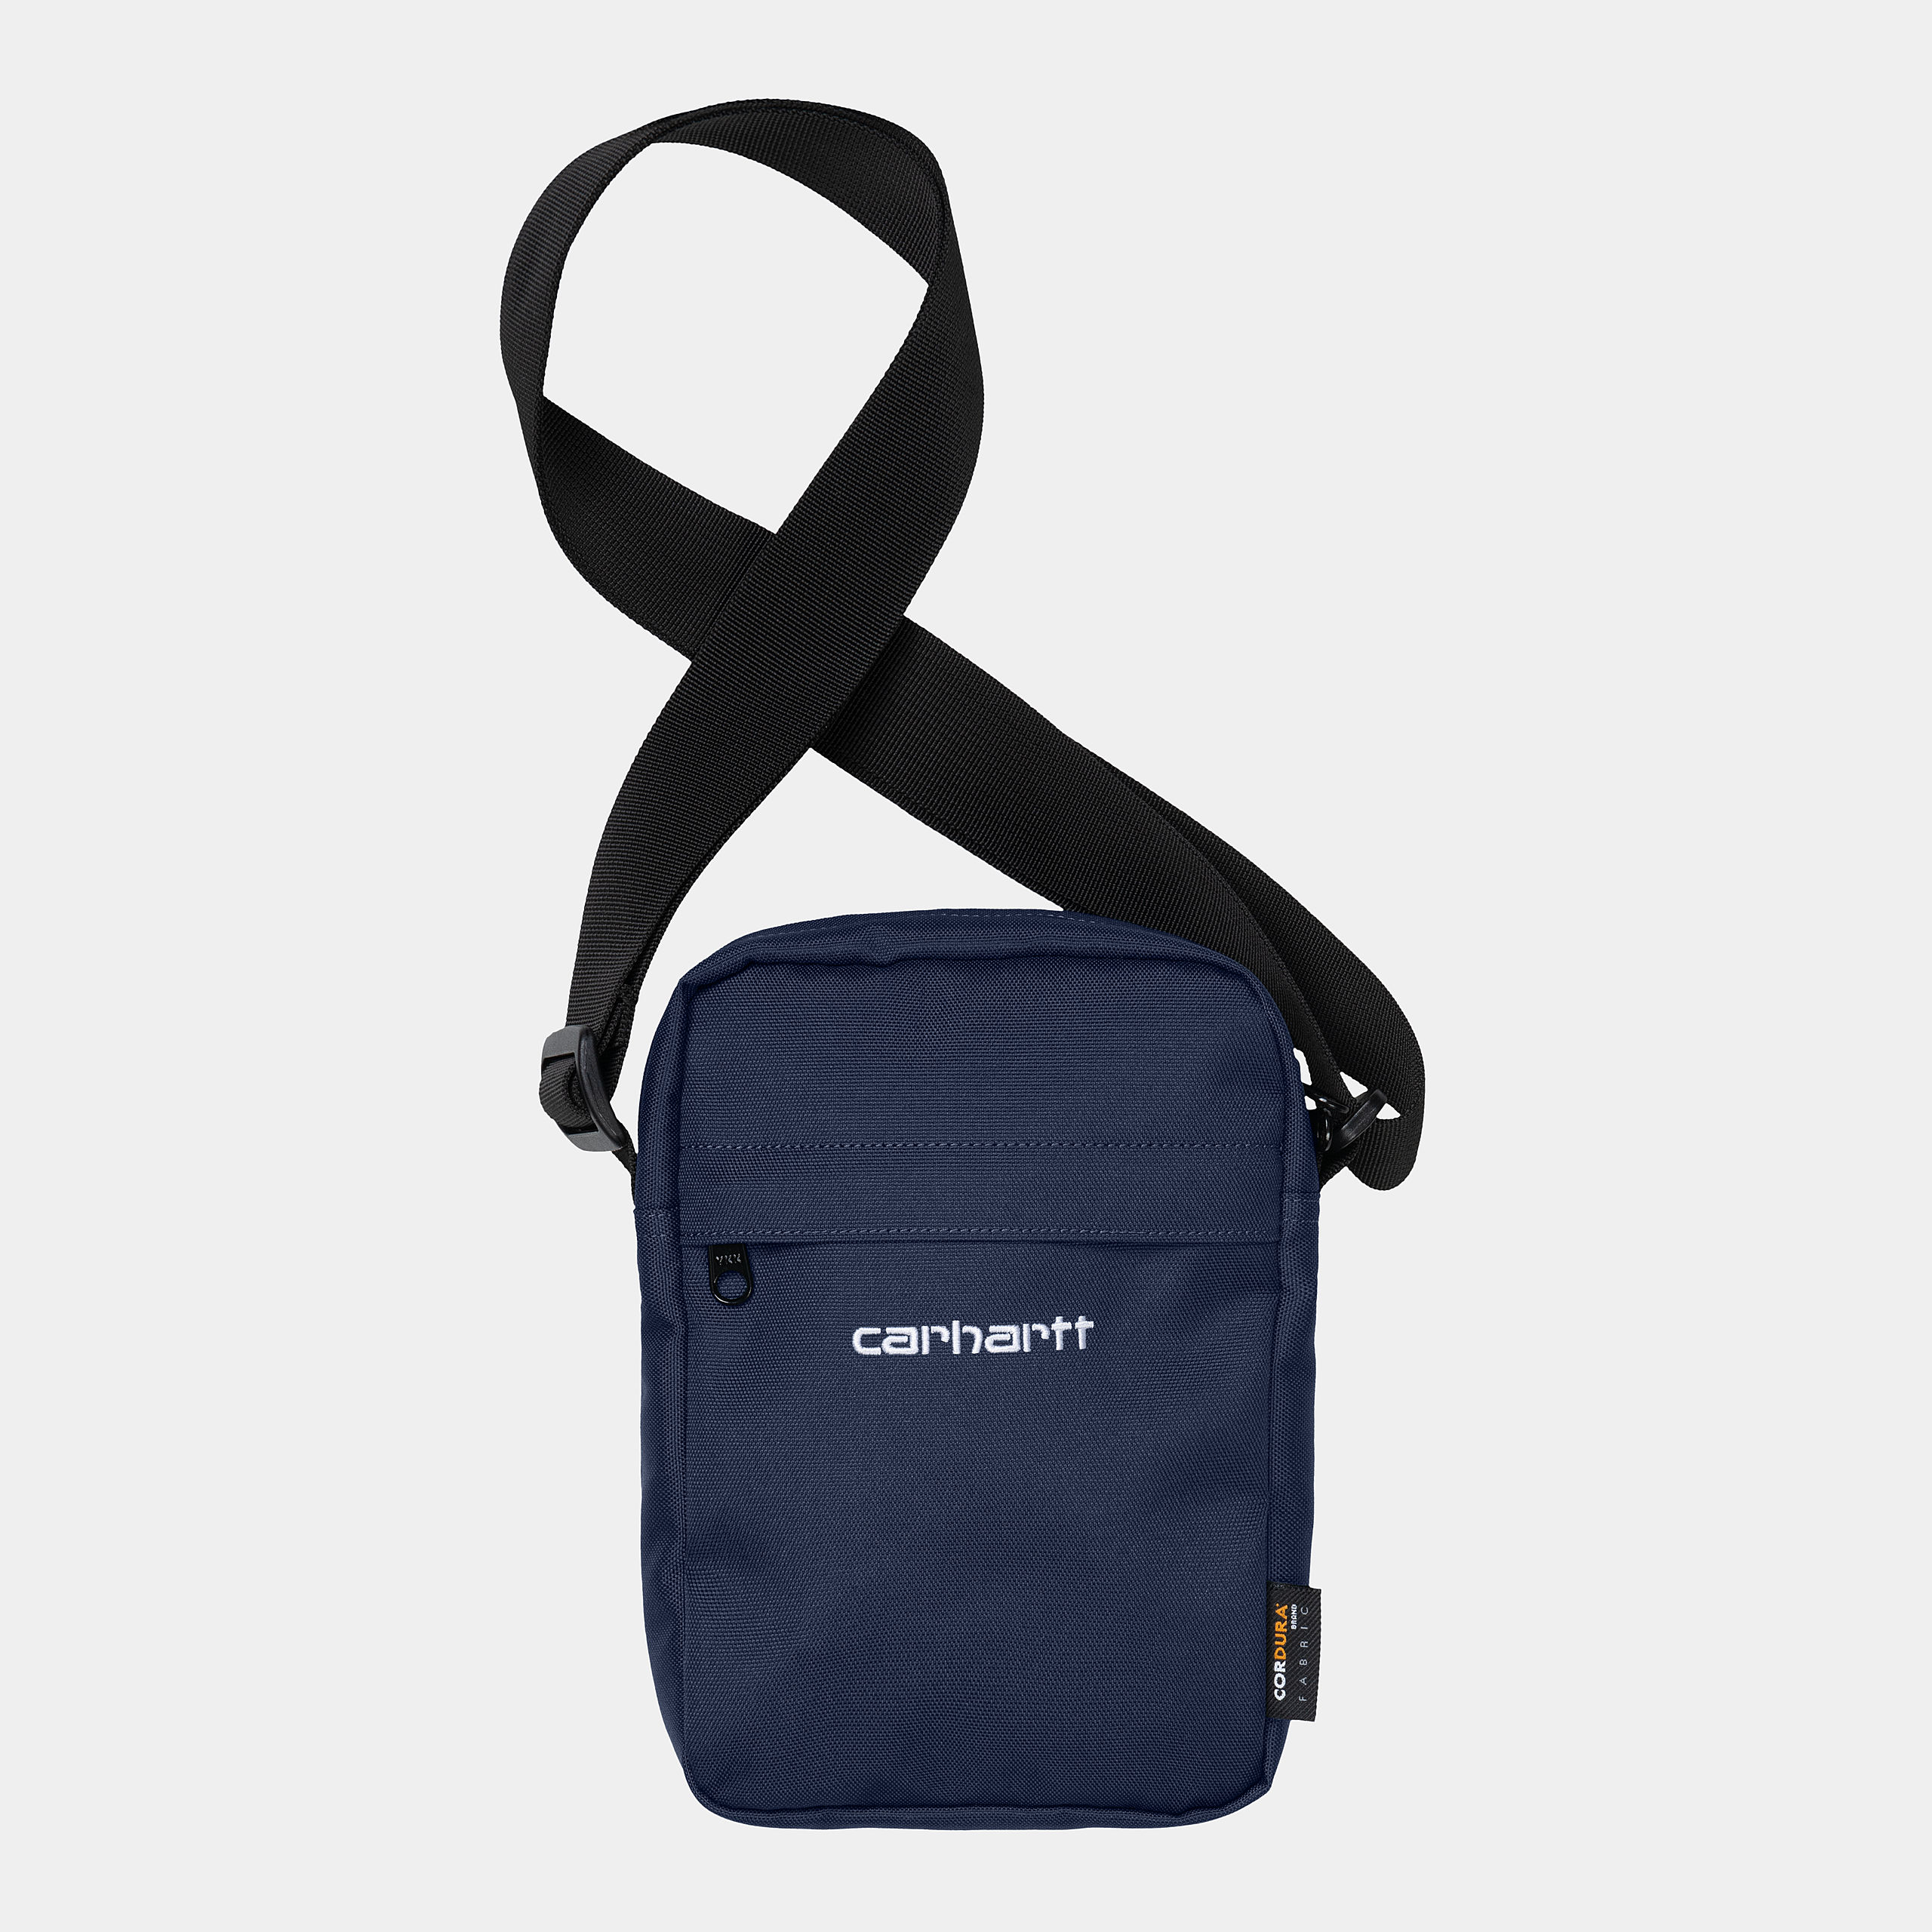 Carhartt WIP - PAYTON SHOULDER POUCH - Space/White